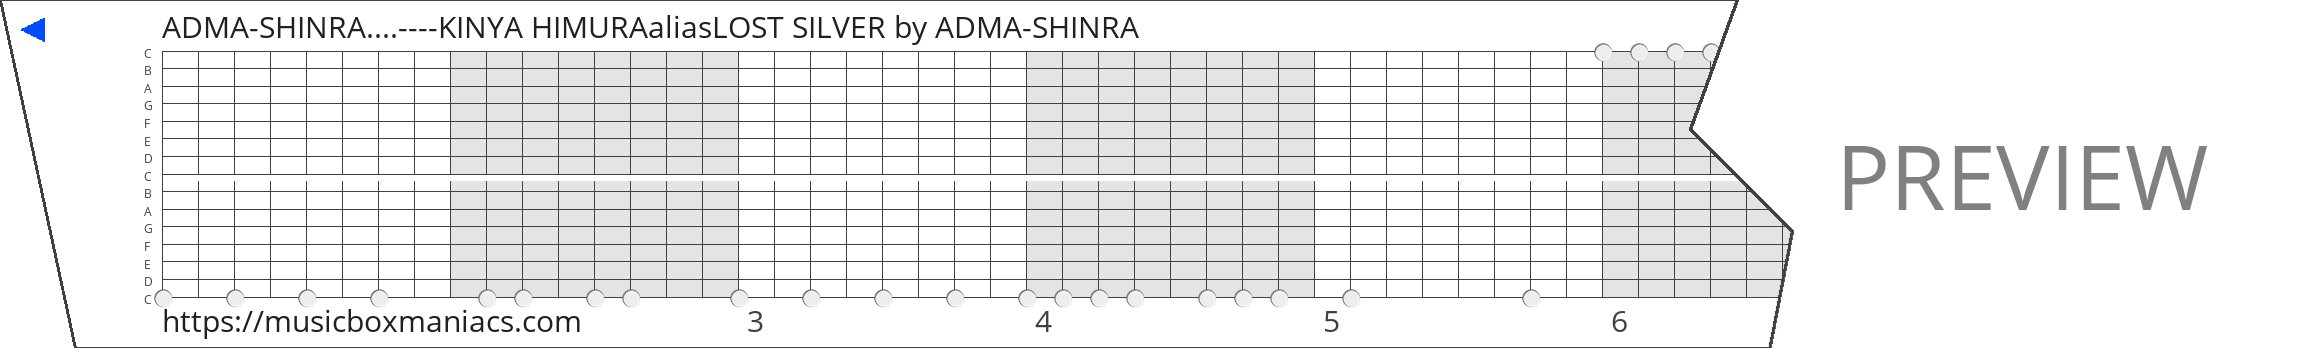 ADMA-SHINRA....----KINYA HIMURAaliasLOST SILVER 15 note music box paper strip